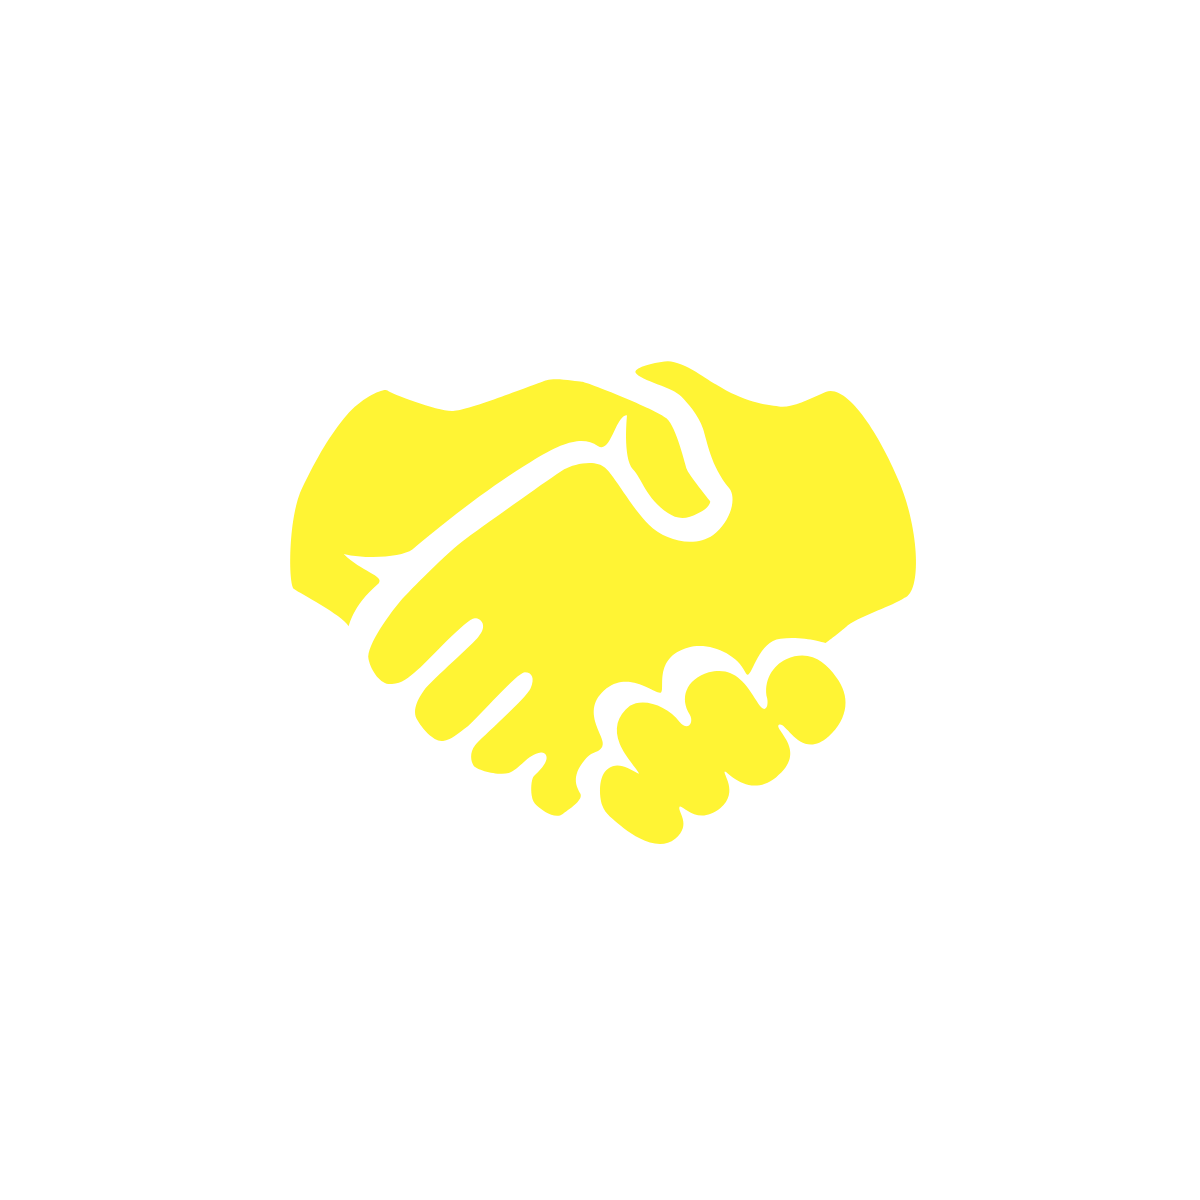 2 hands doing a handshake